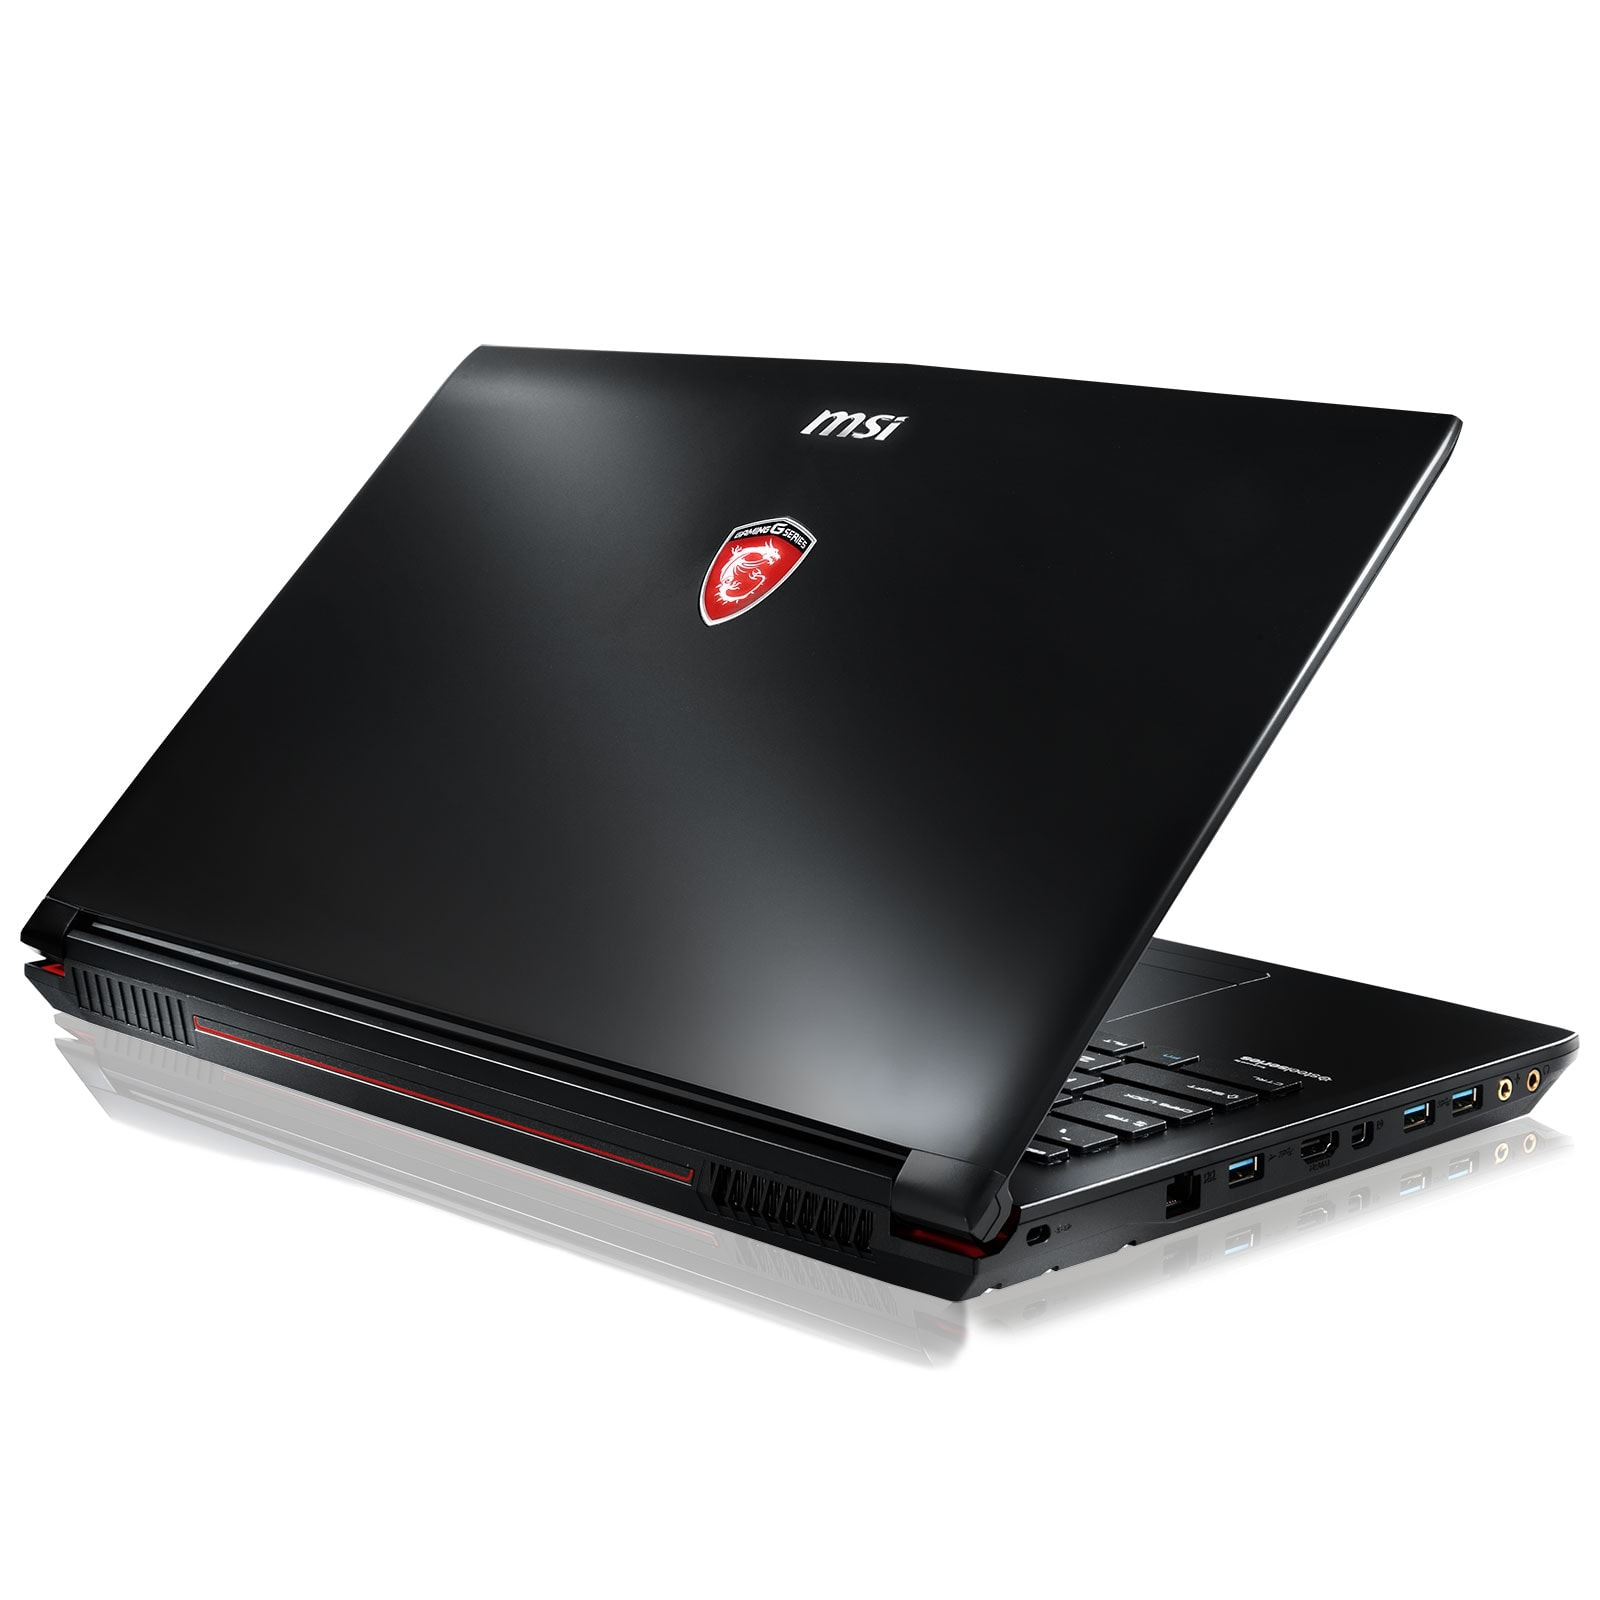 MSI 9S7-16J522-608 - PC portable MSI - Cybertek.fr - 3